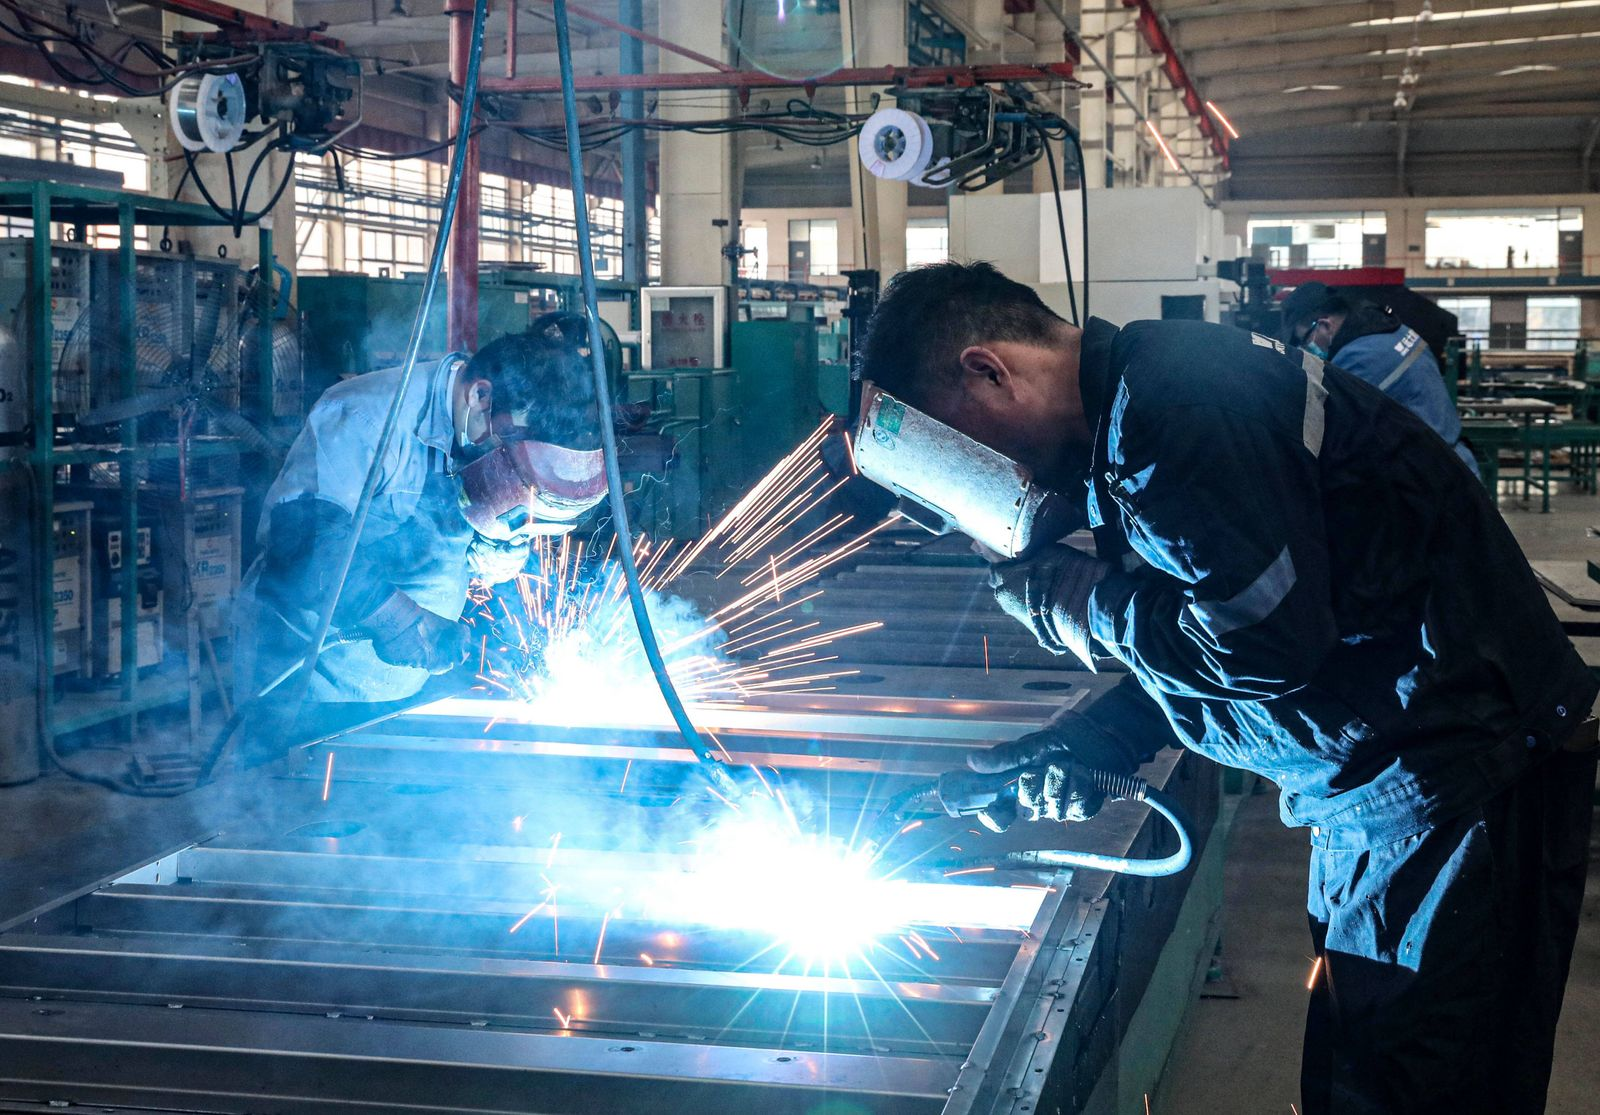 SHENYANG, CHINA - DECEMBER 22: Employees work on the production line of escalator and elevator for export at a factory